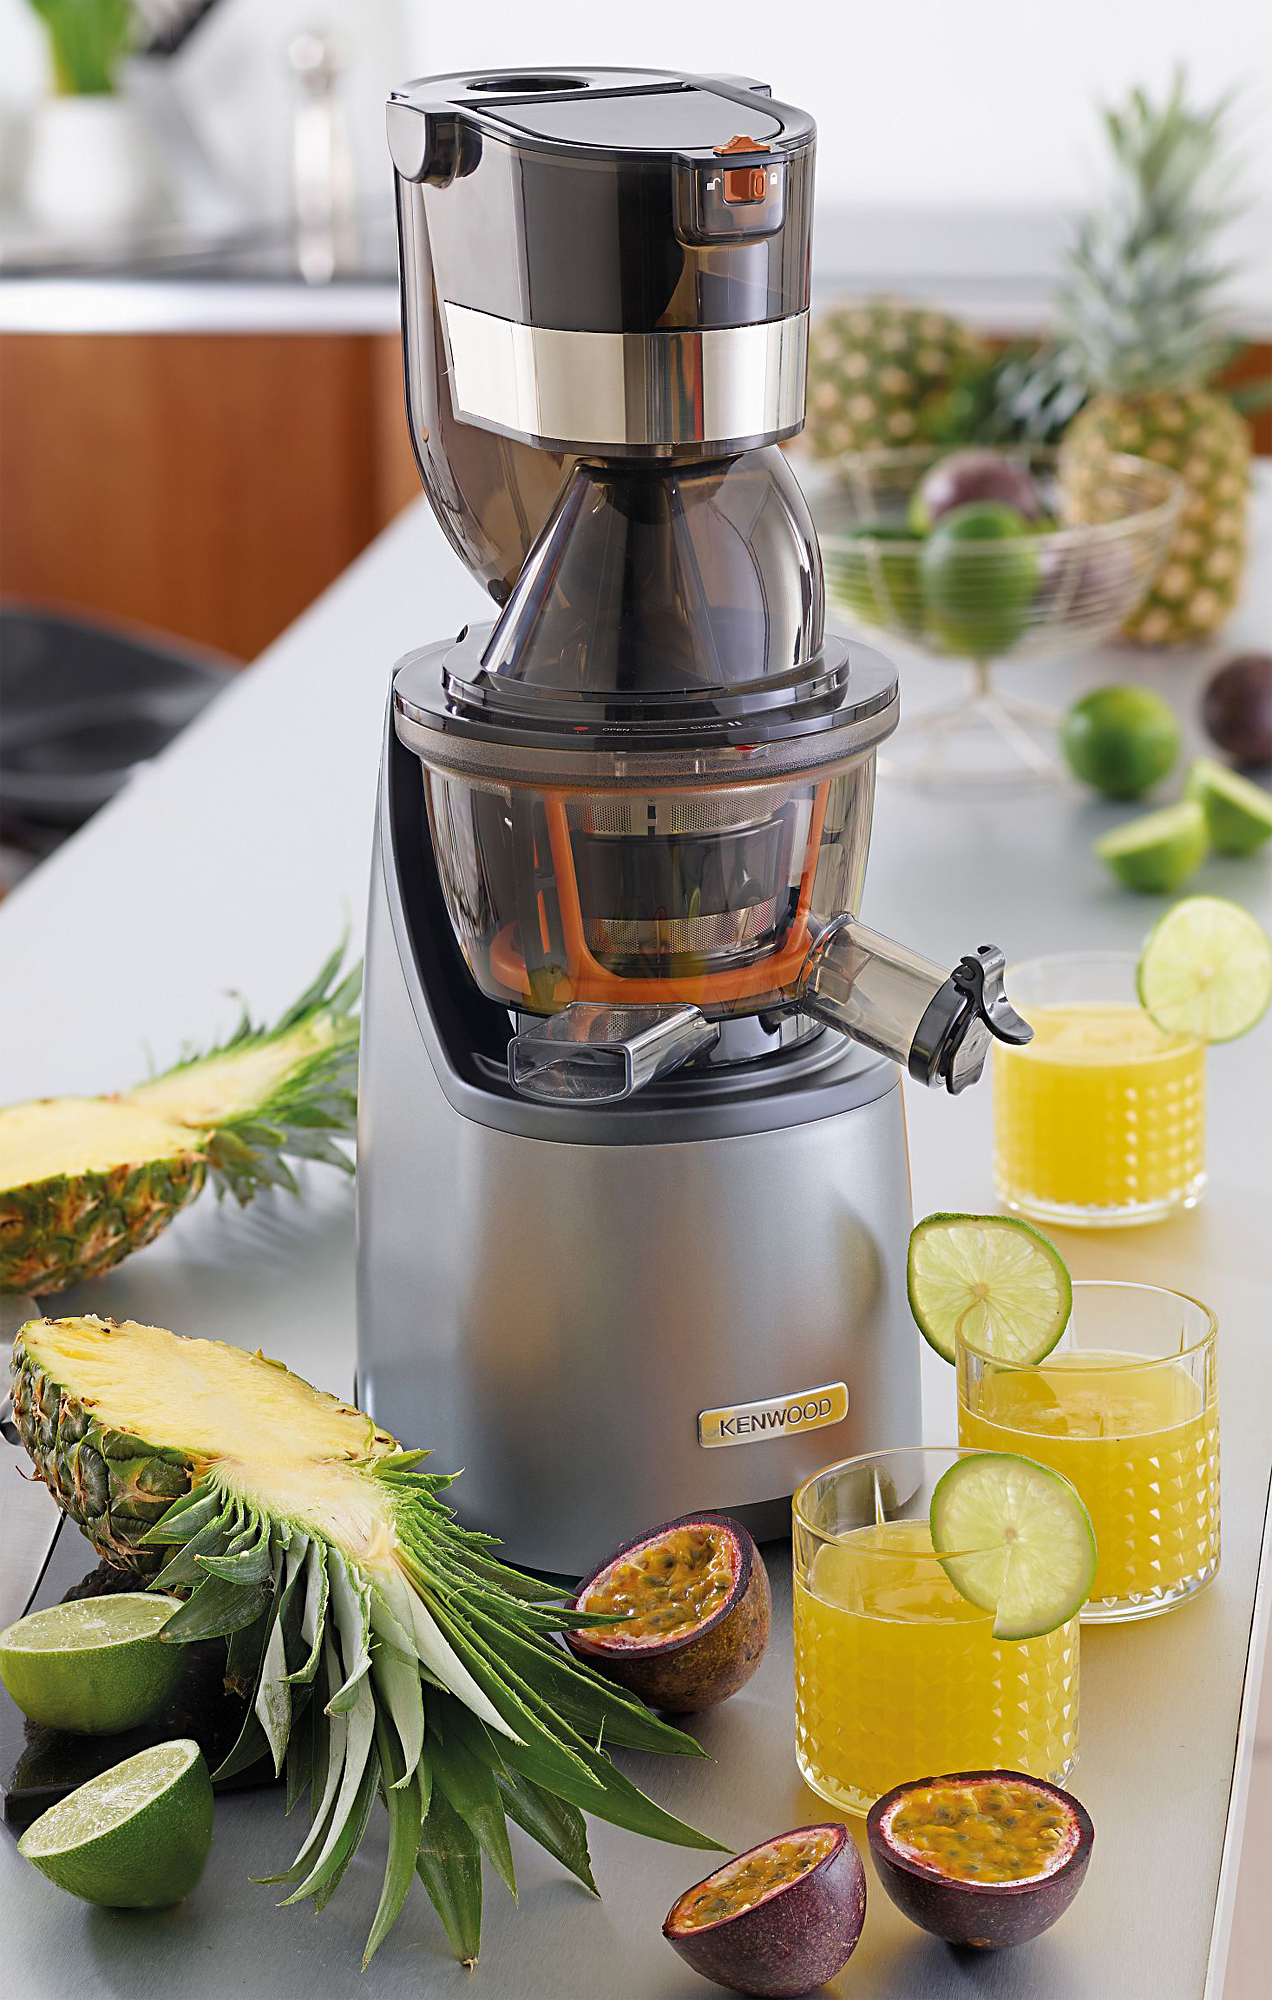 Kenwood Slow Juicer Jmp 800 Si : Kenwood Entsafter Slow Juicer JMP800SI